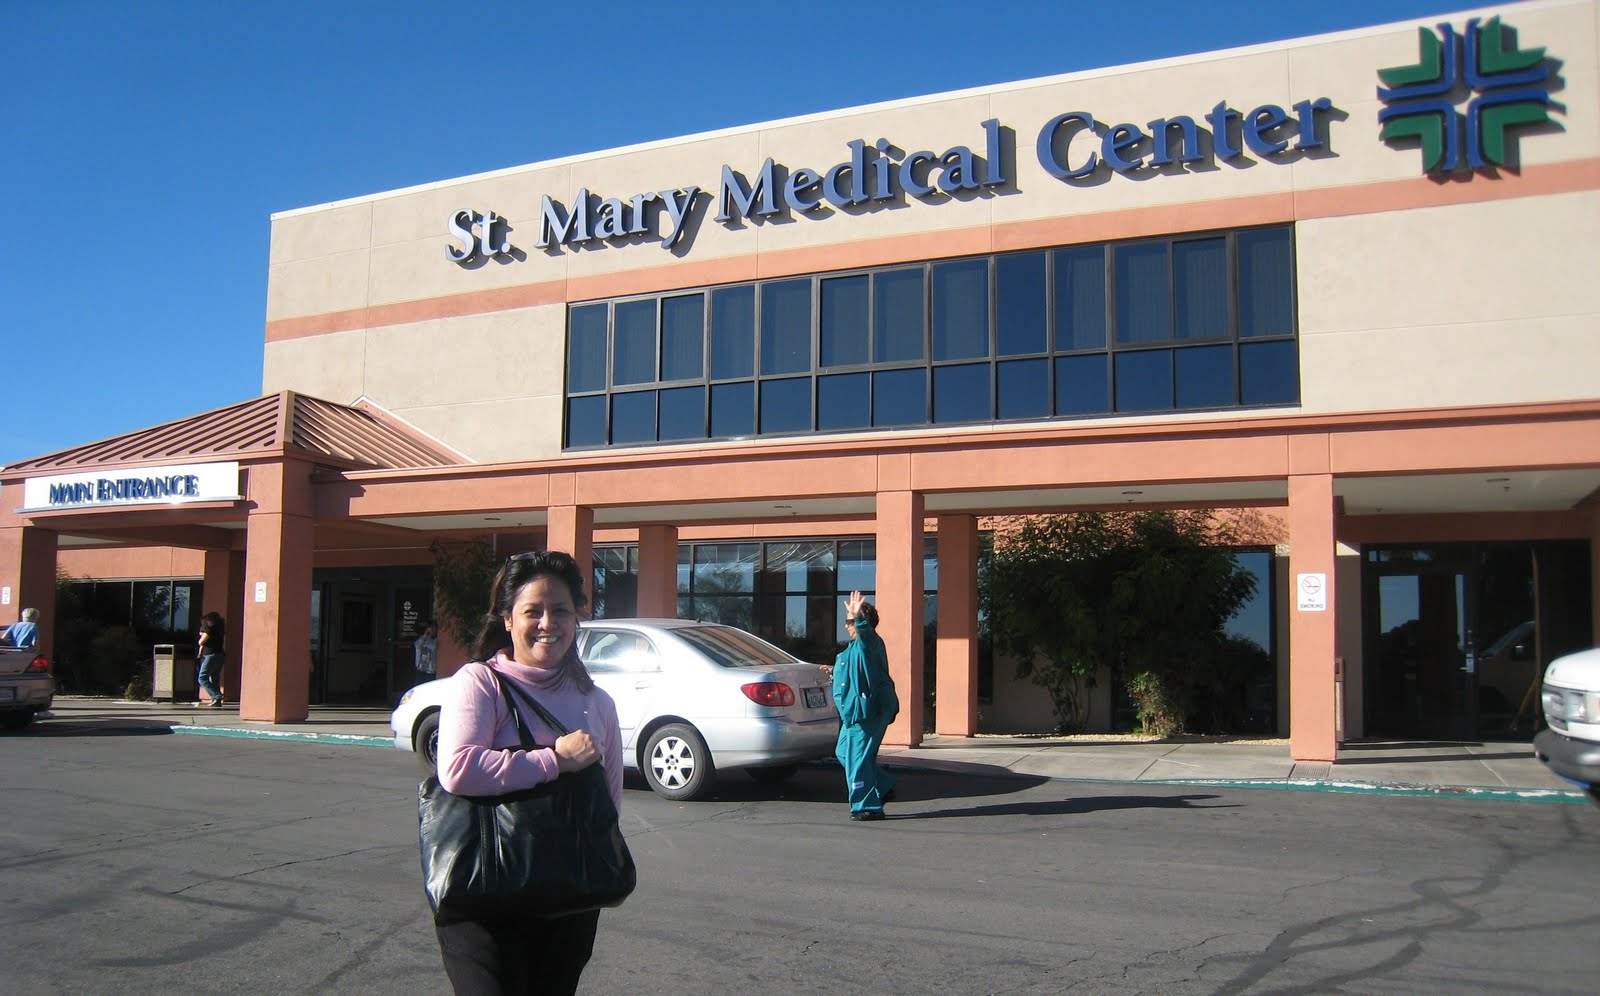 Hello!: The St. Mary Medical Center at Victorville, California